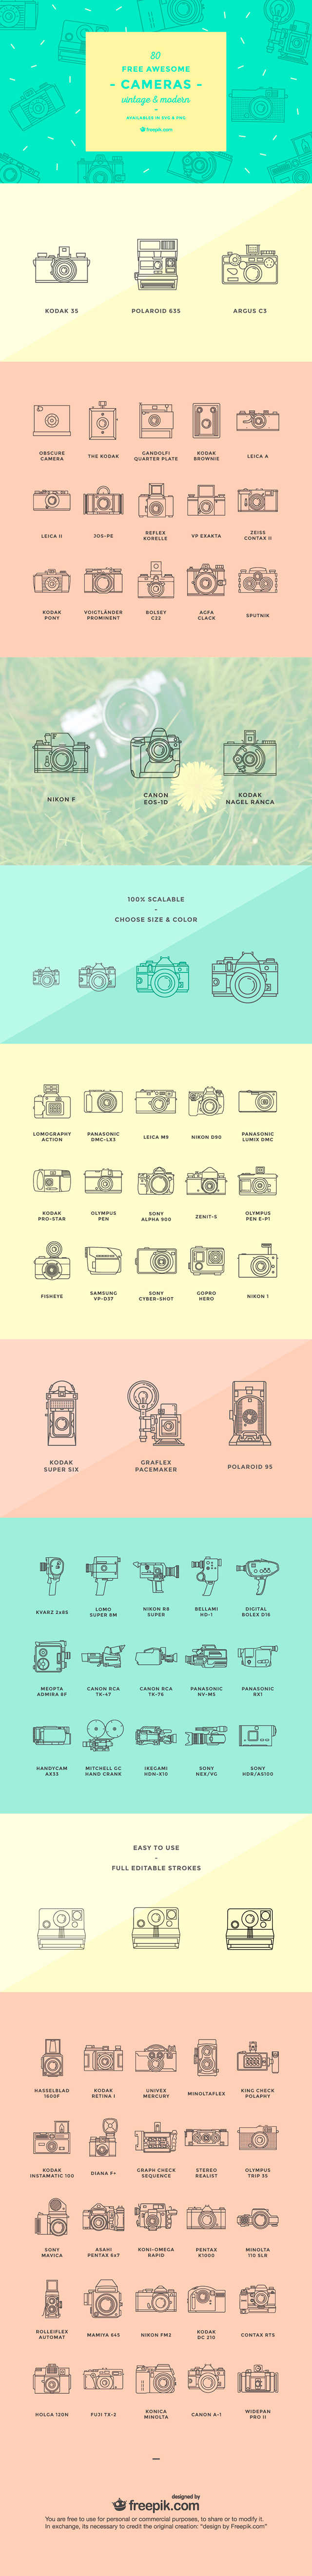 camera icon set 80 free awesome modern and vintage camera vector icons